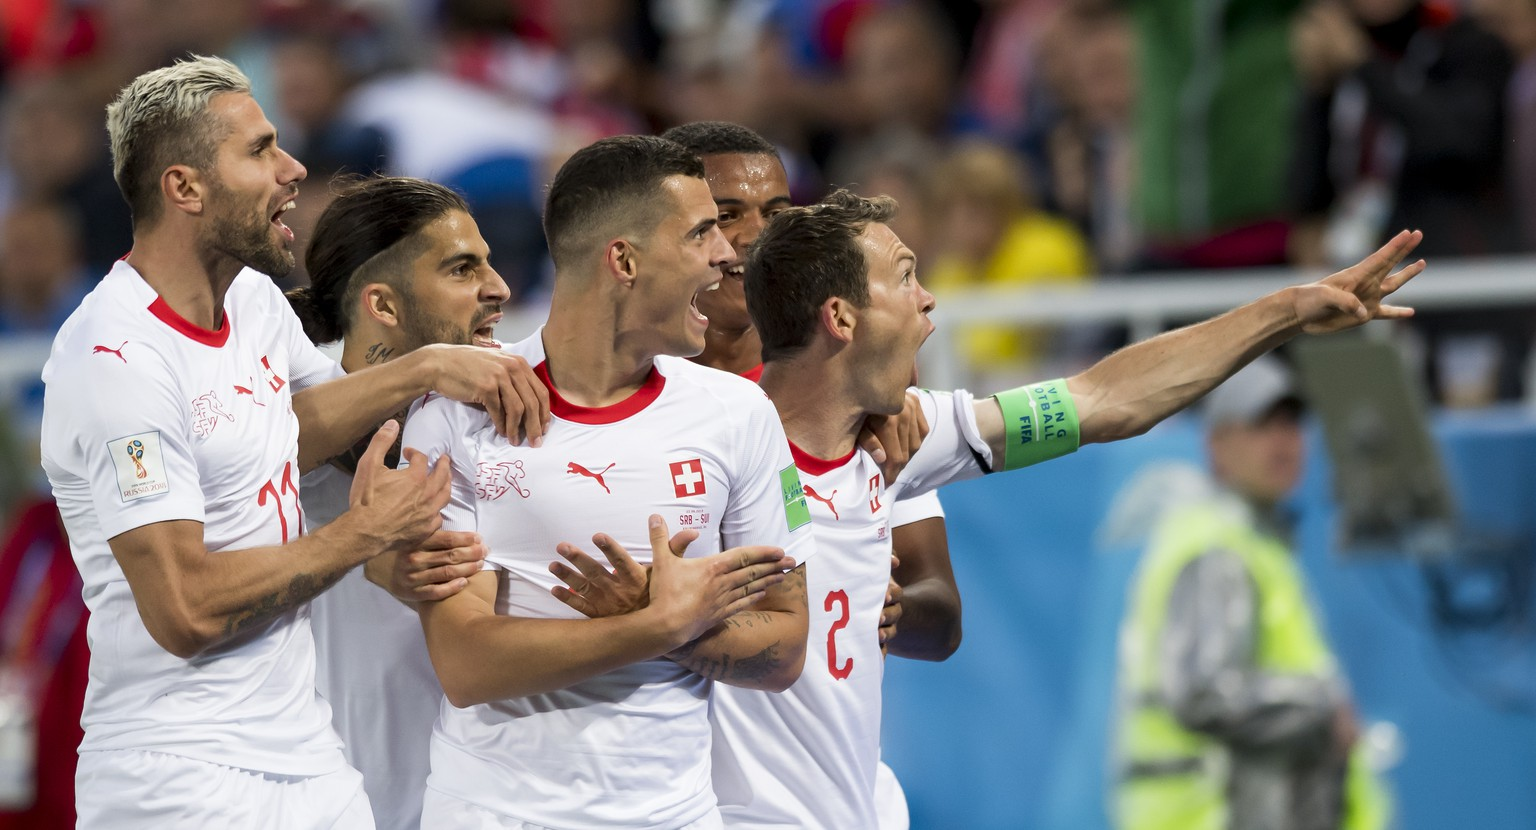 Switzerland's midfielder Granit Xhaka, center, celebrates after scoring a goal with team mates Switzerland's midfielder Valon Behrami, Switzerland's defender Ricardo Rodriguez, Switzerland's defender Manuel Akanji, and Switzerland's defender Stephan Lichtsteiner, from left to right, during the FIFA World Cup 2018 group E preliminary round soccer match between Switzerland and Serbia at the Arena Baltika Stadium, in Kaliningrad, Russia, Friday, June 22, 2018. (KEYSTONE/Laurent Gillieron)